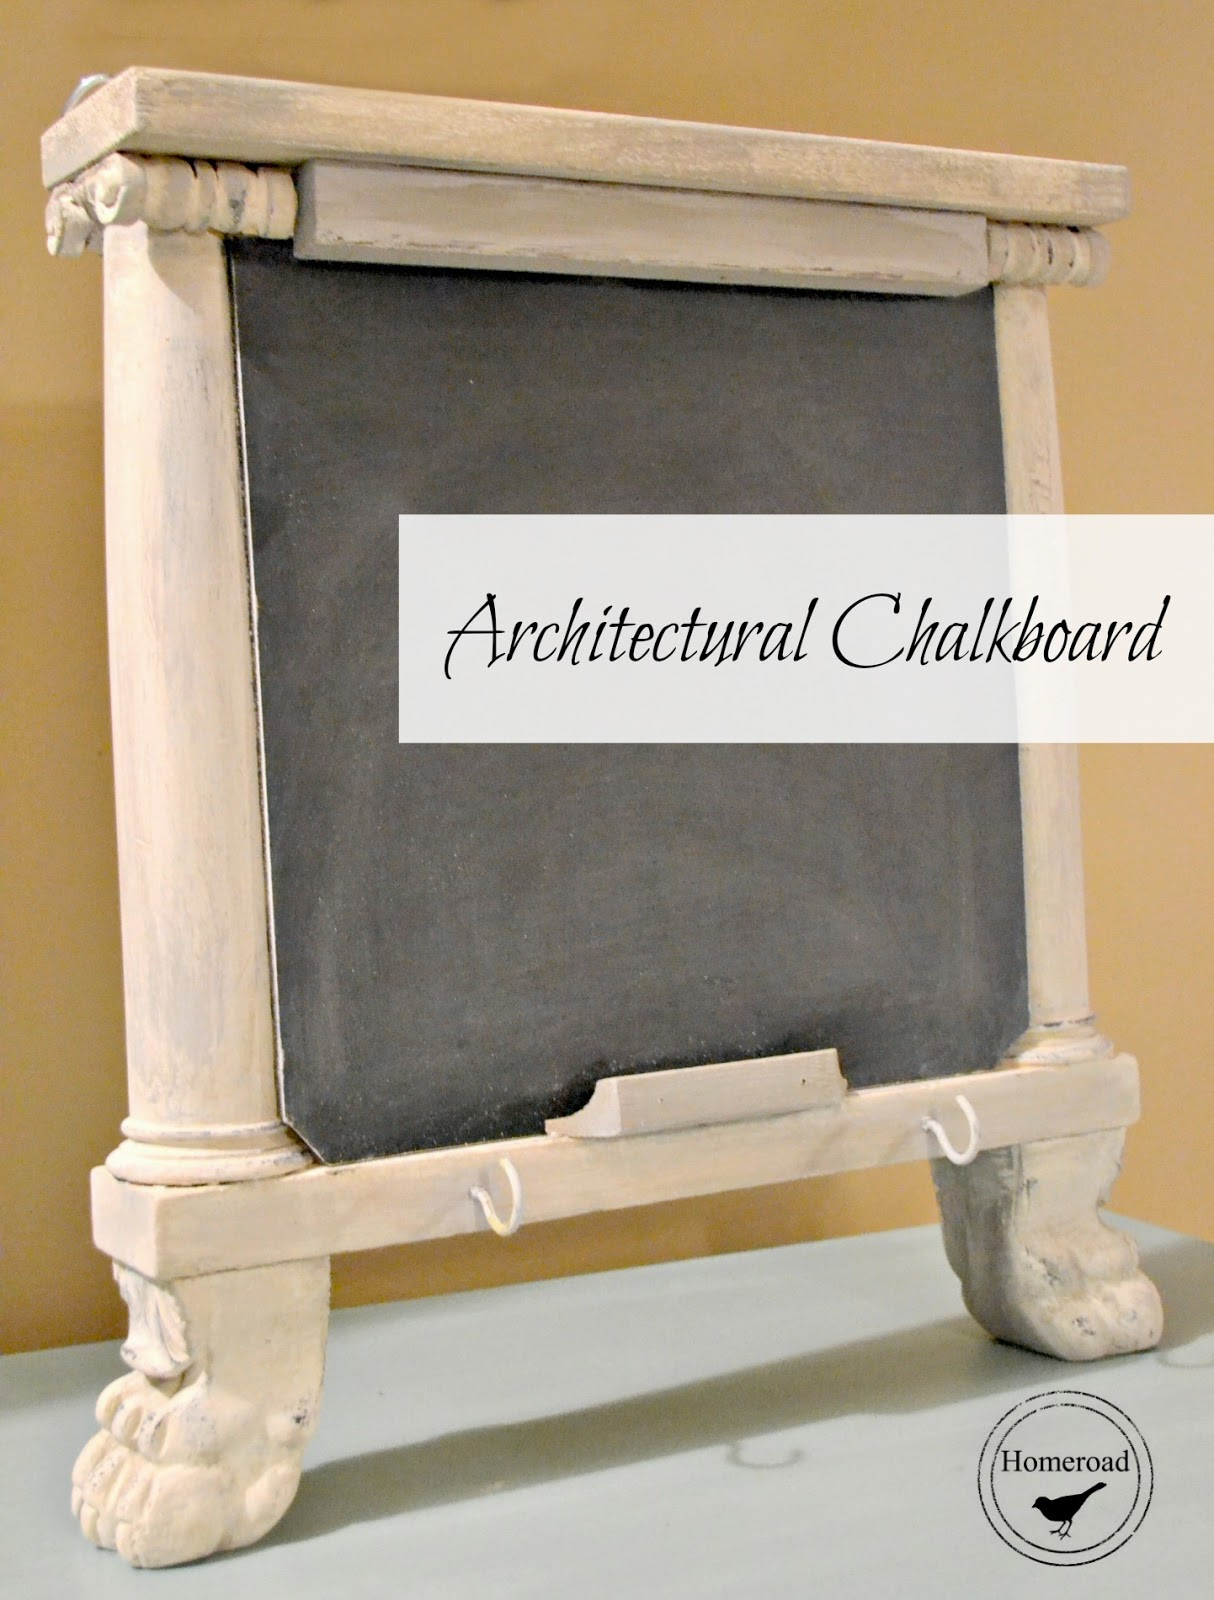 repurposed architectural chalkboard www.homeroad.net